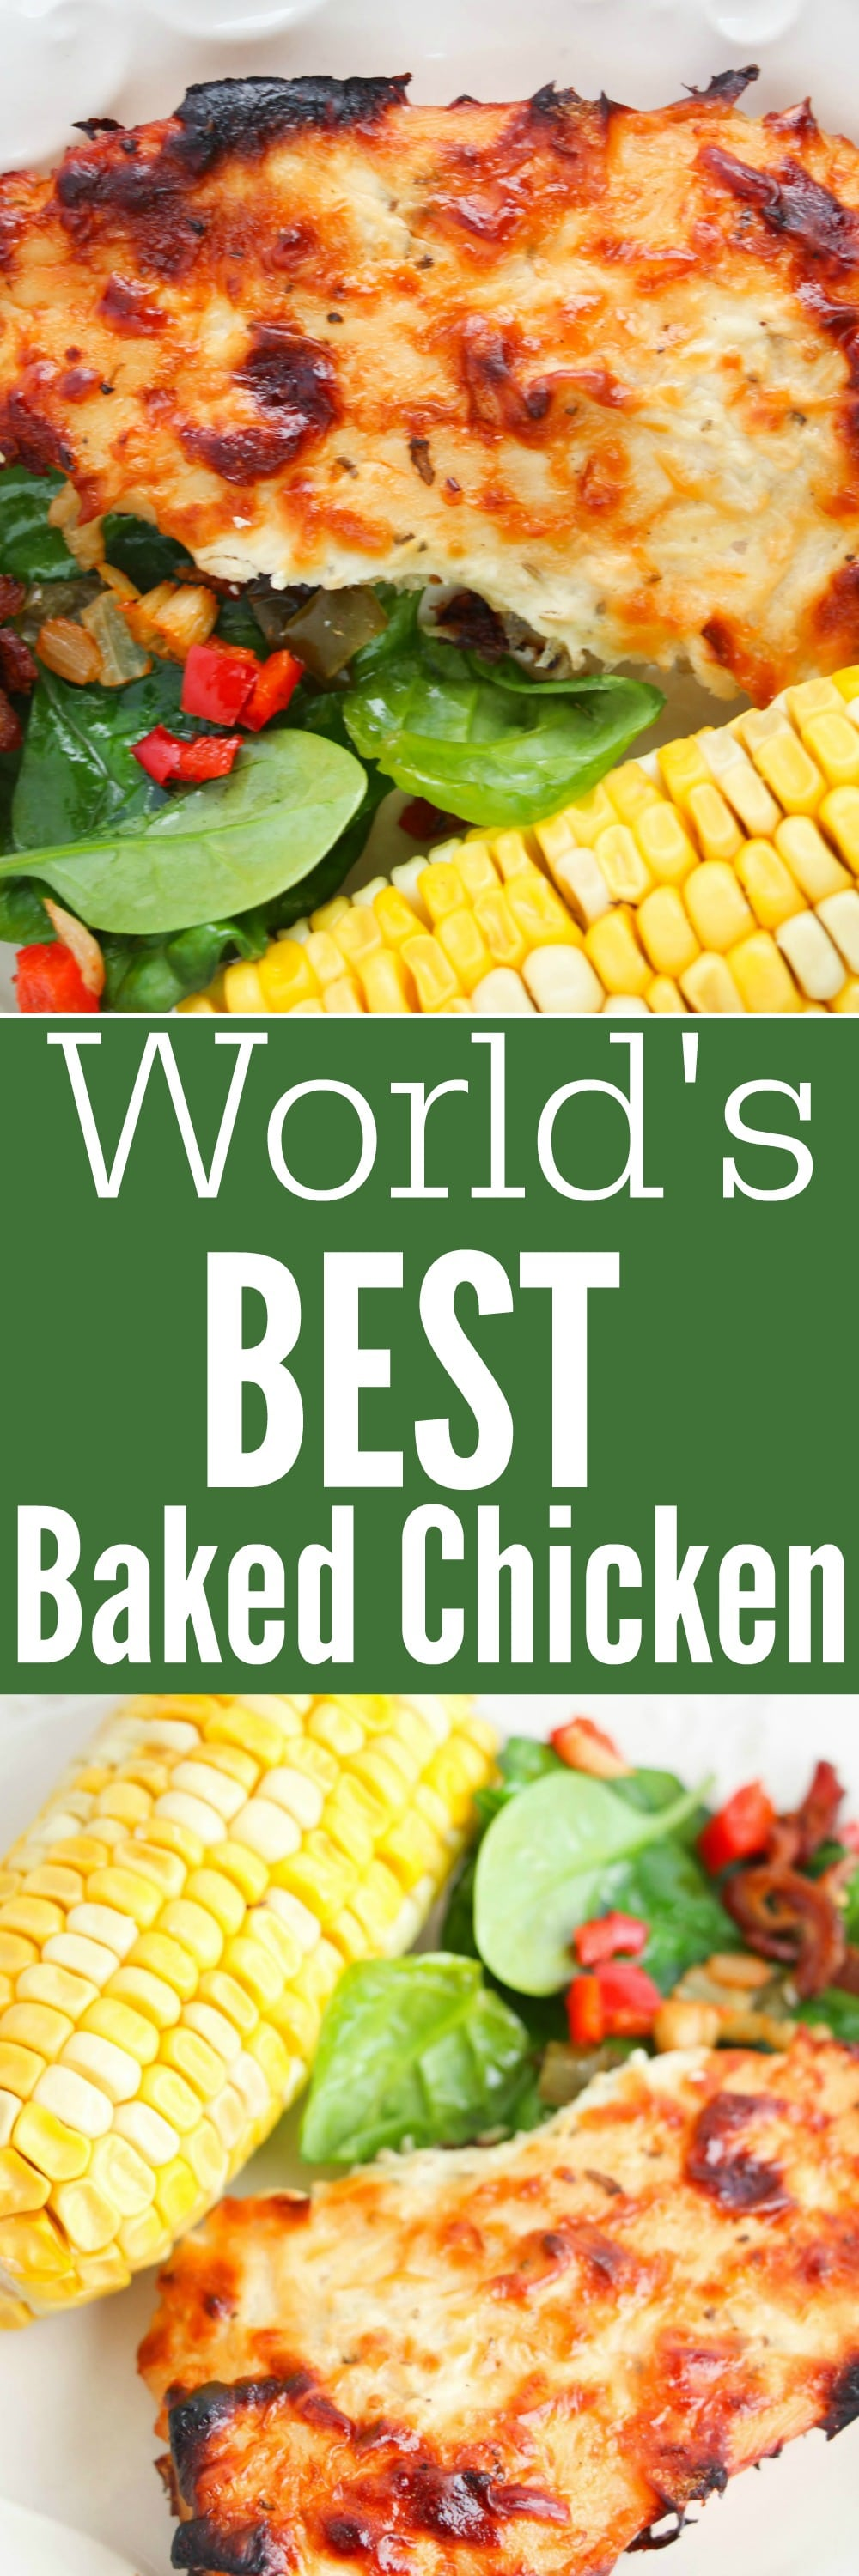 World's Best Baked Chicken Recipe - easy to make and a quick family favourite.